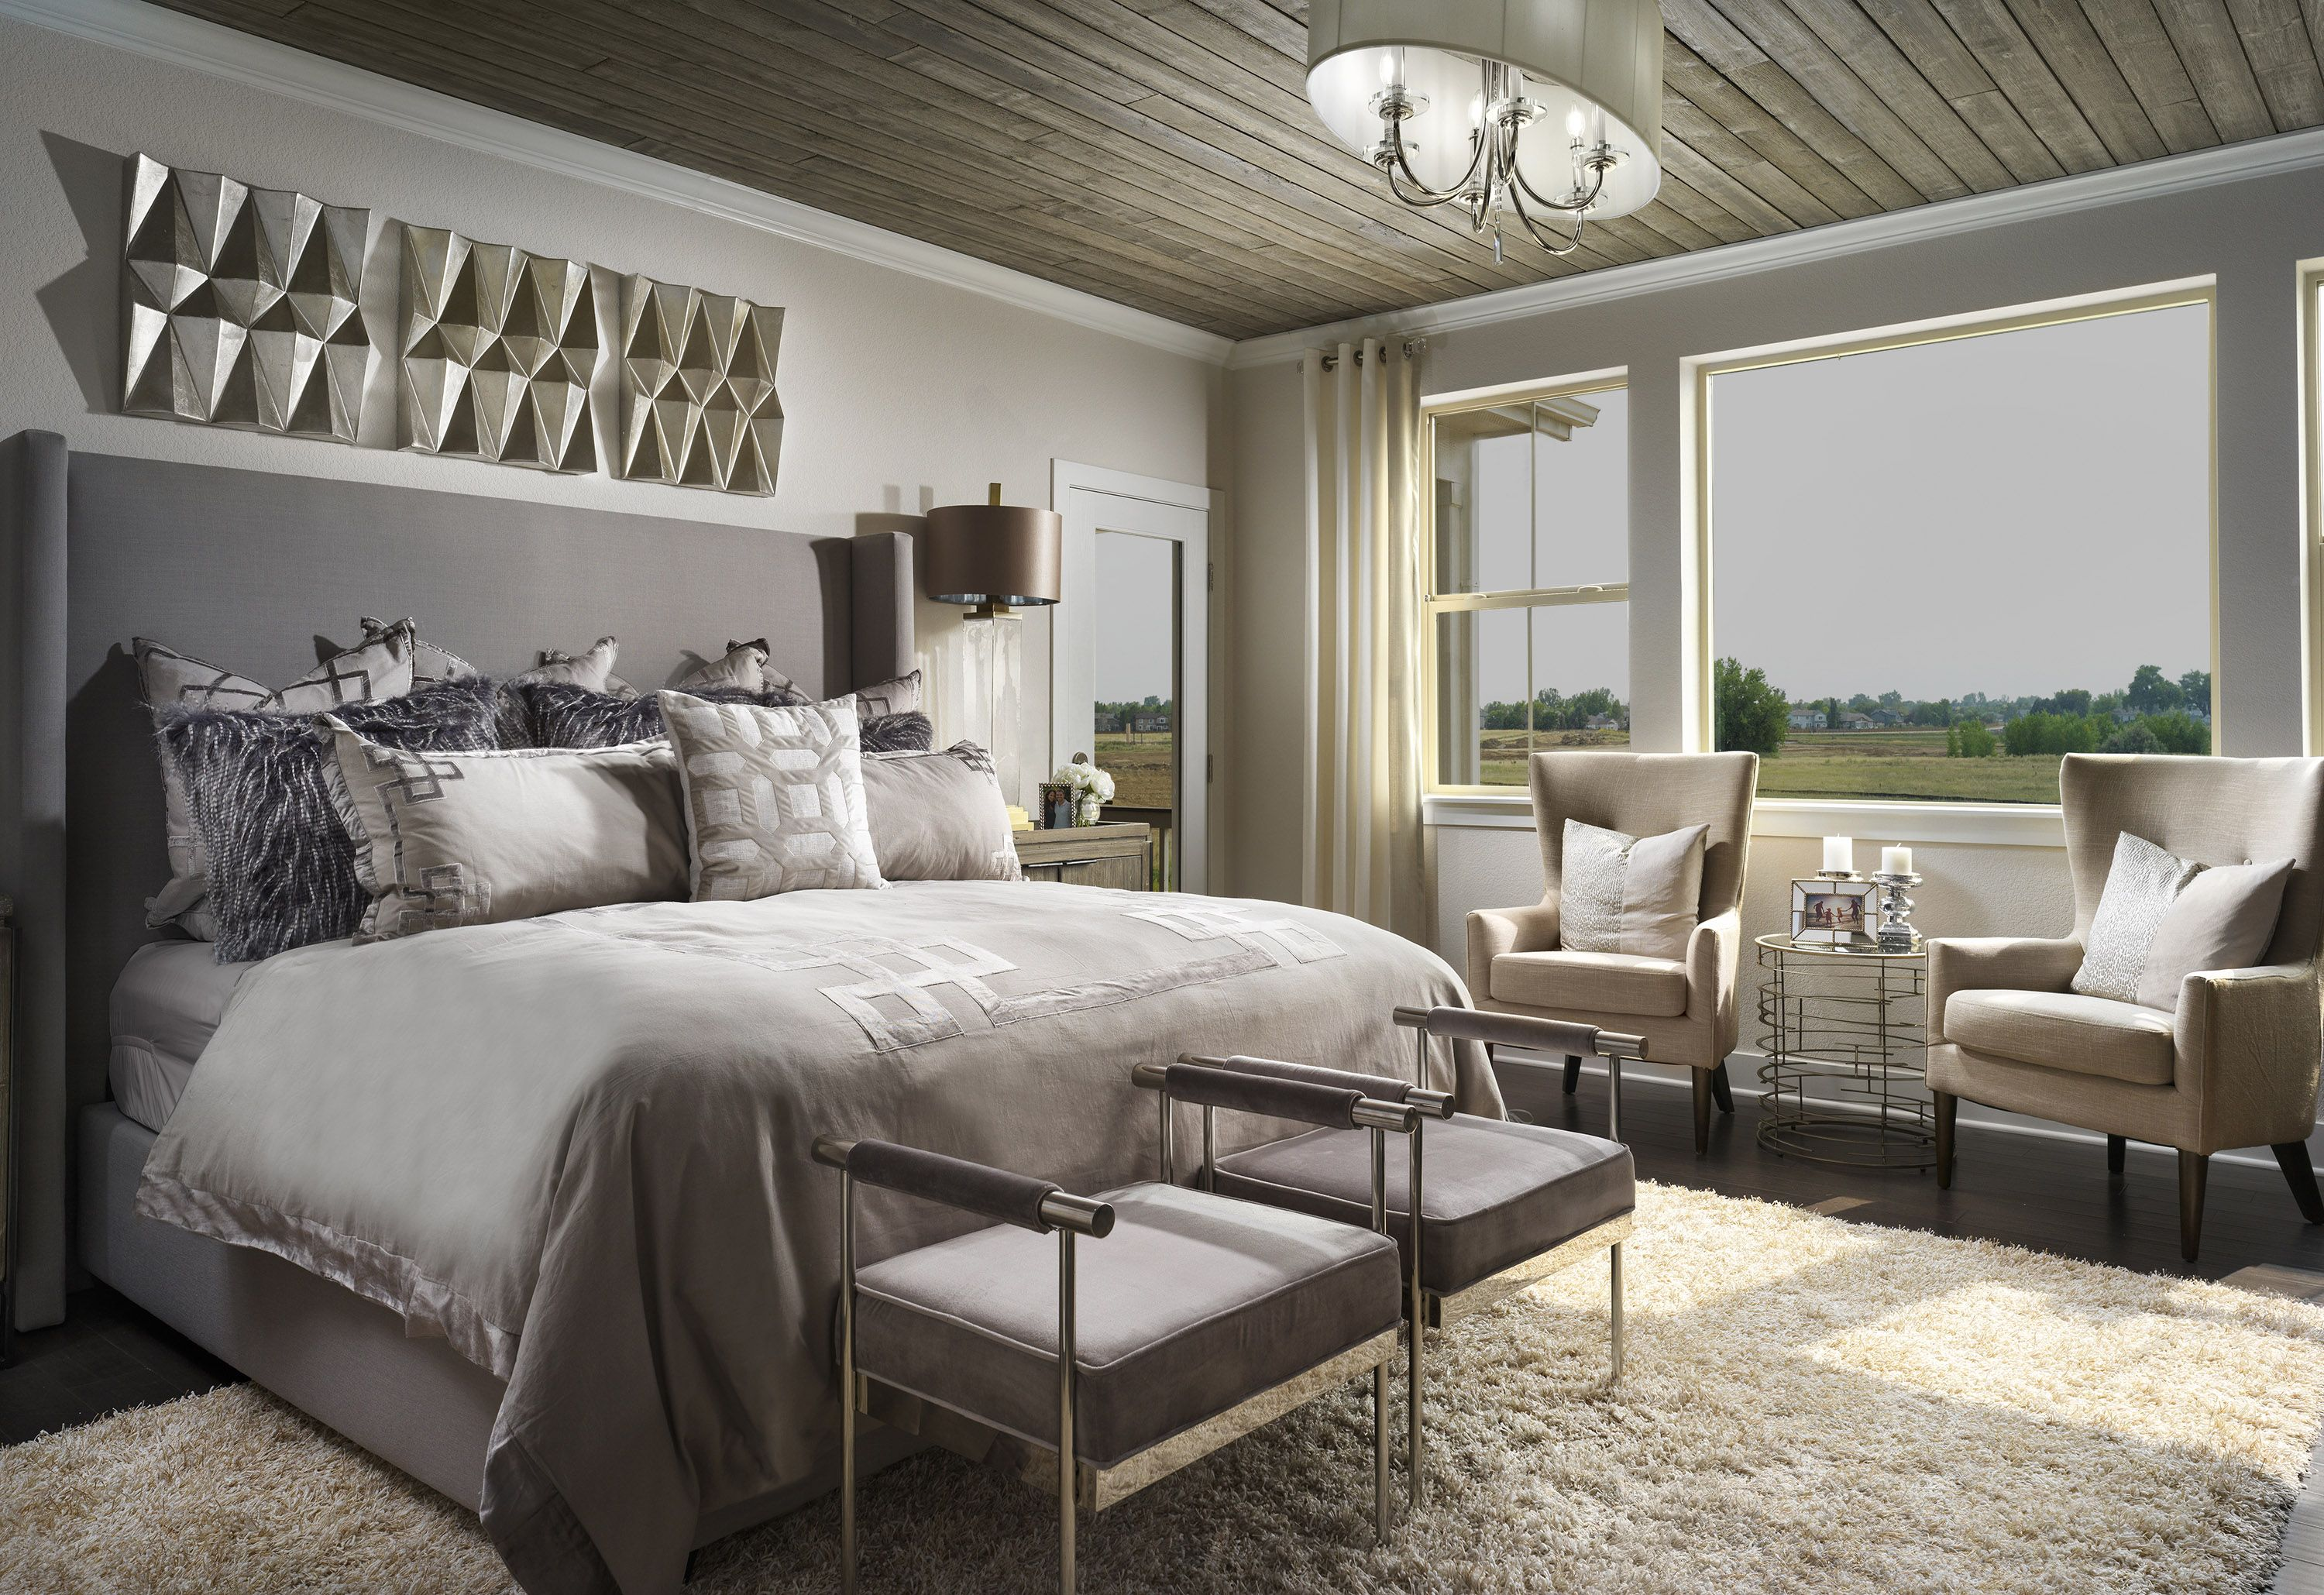 Possibilities For Design Luxury, Modern And Contemporary Bedroom Best Top